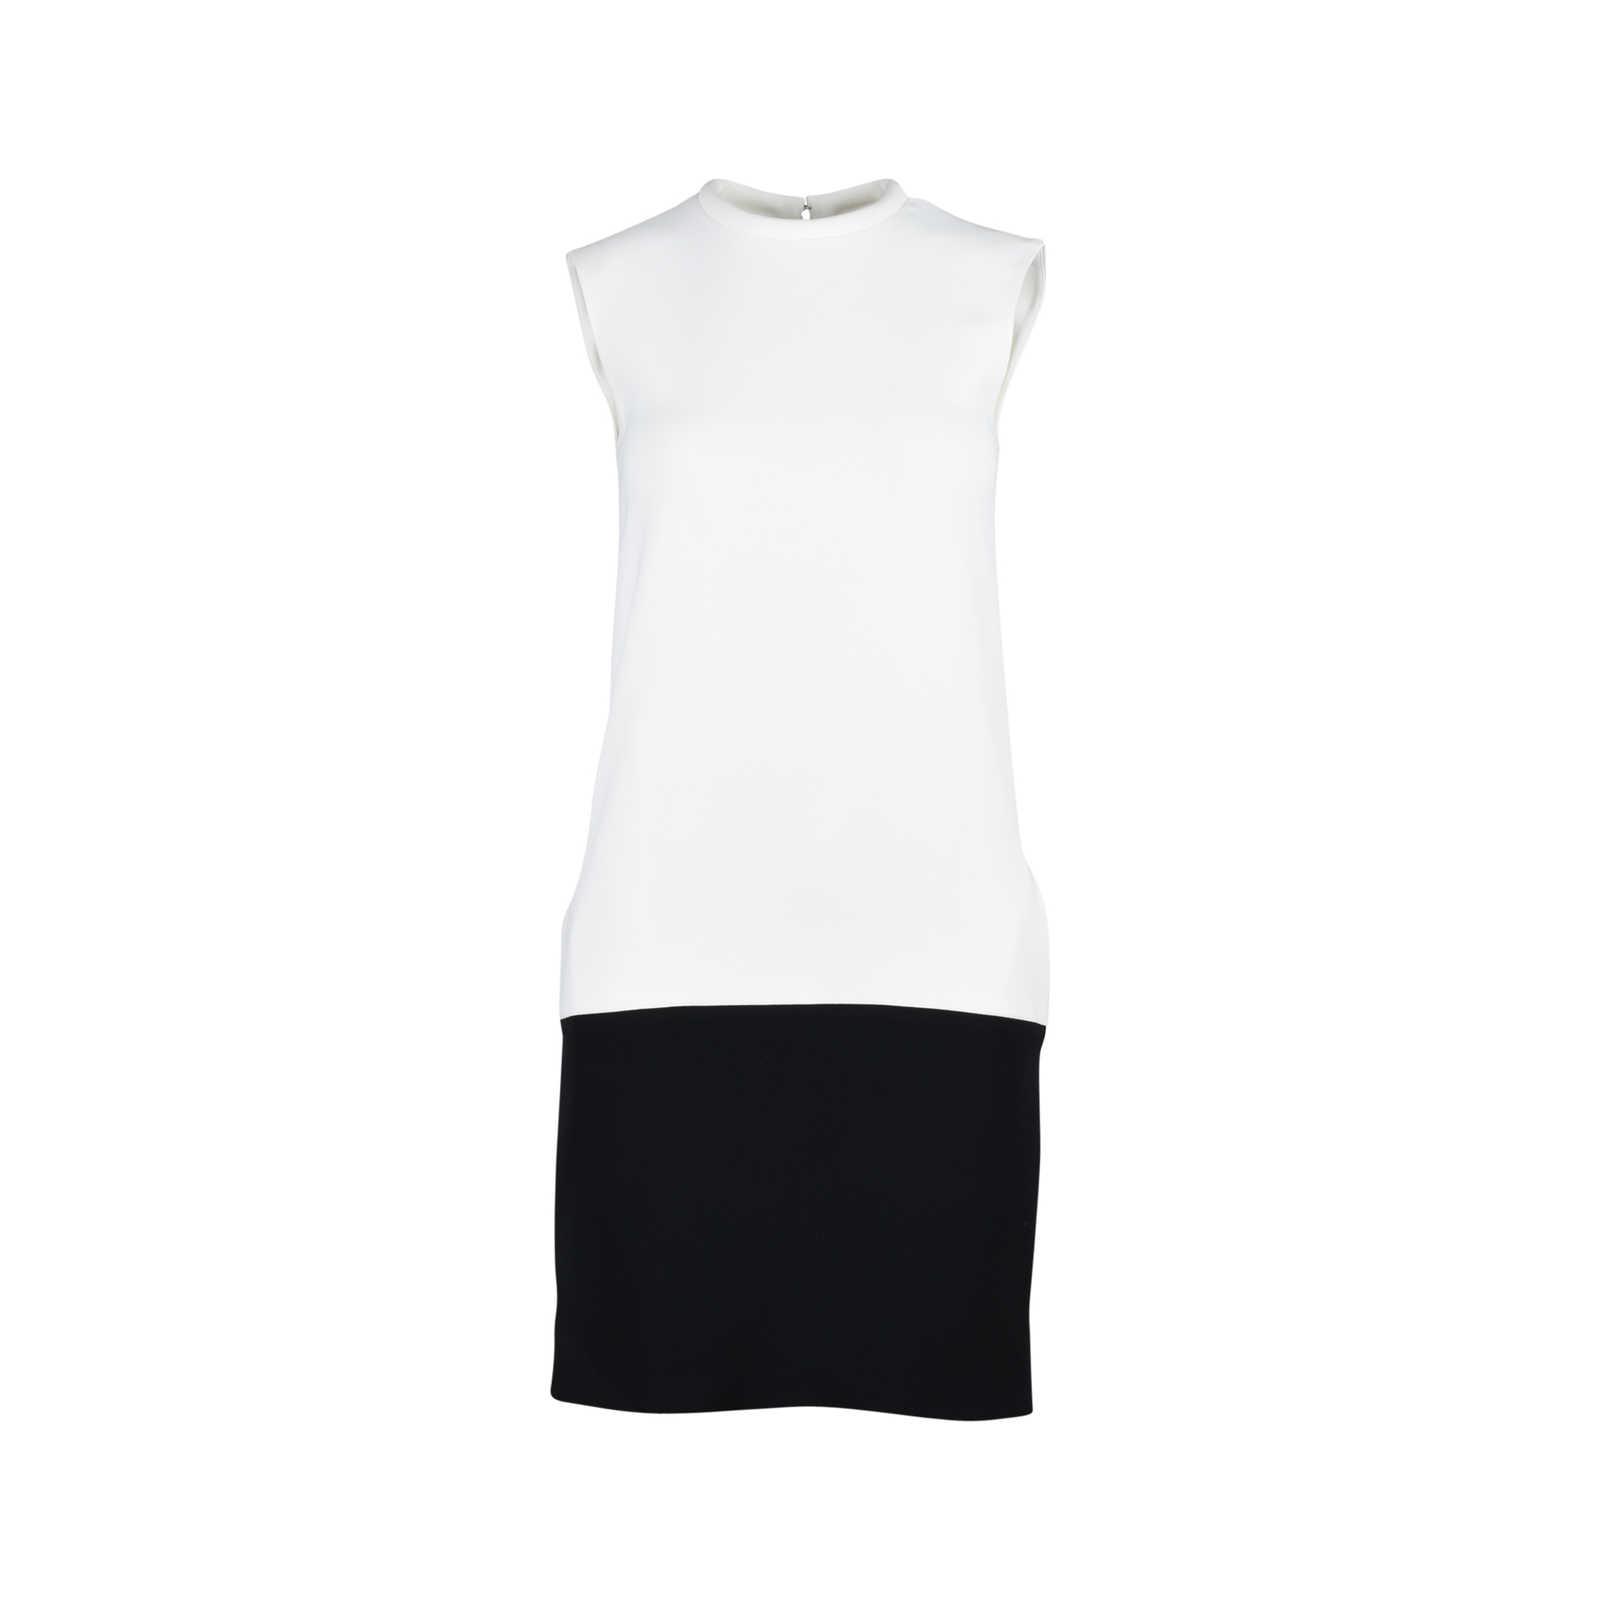 Céline Sleeveless Shift Dress Clearance 100% Guaranteed Real Cheap Price Buy Cheap Newest Cheap Sale Websites CuSxS9Cxwx